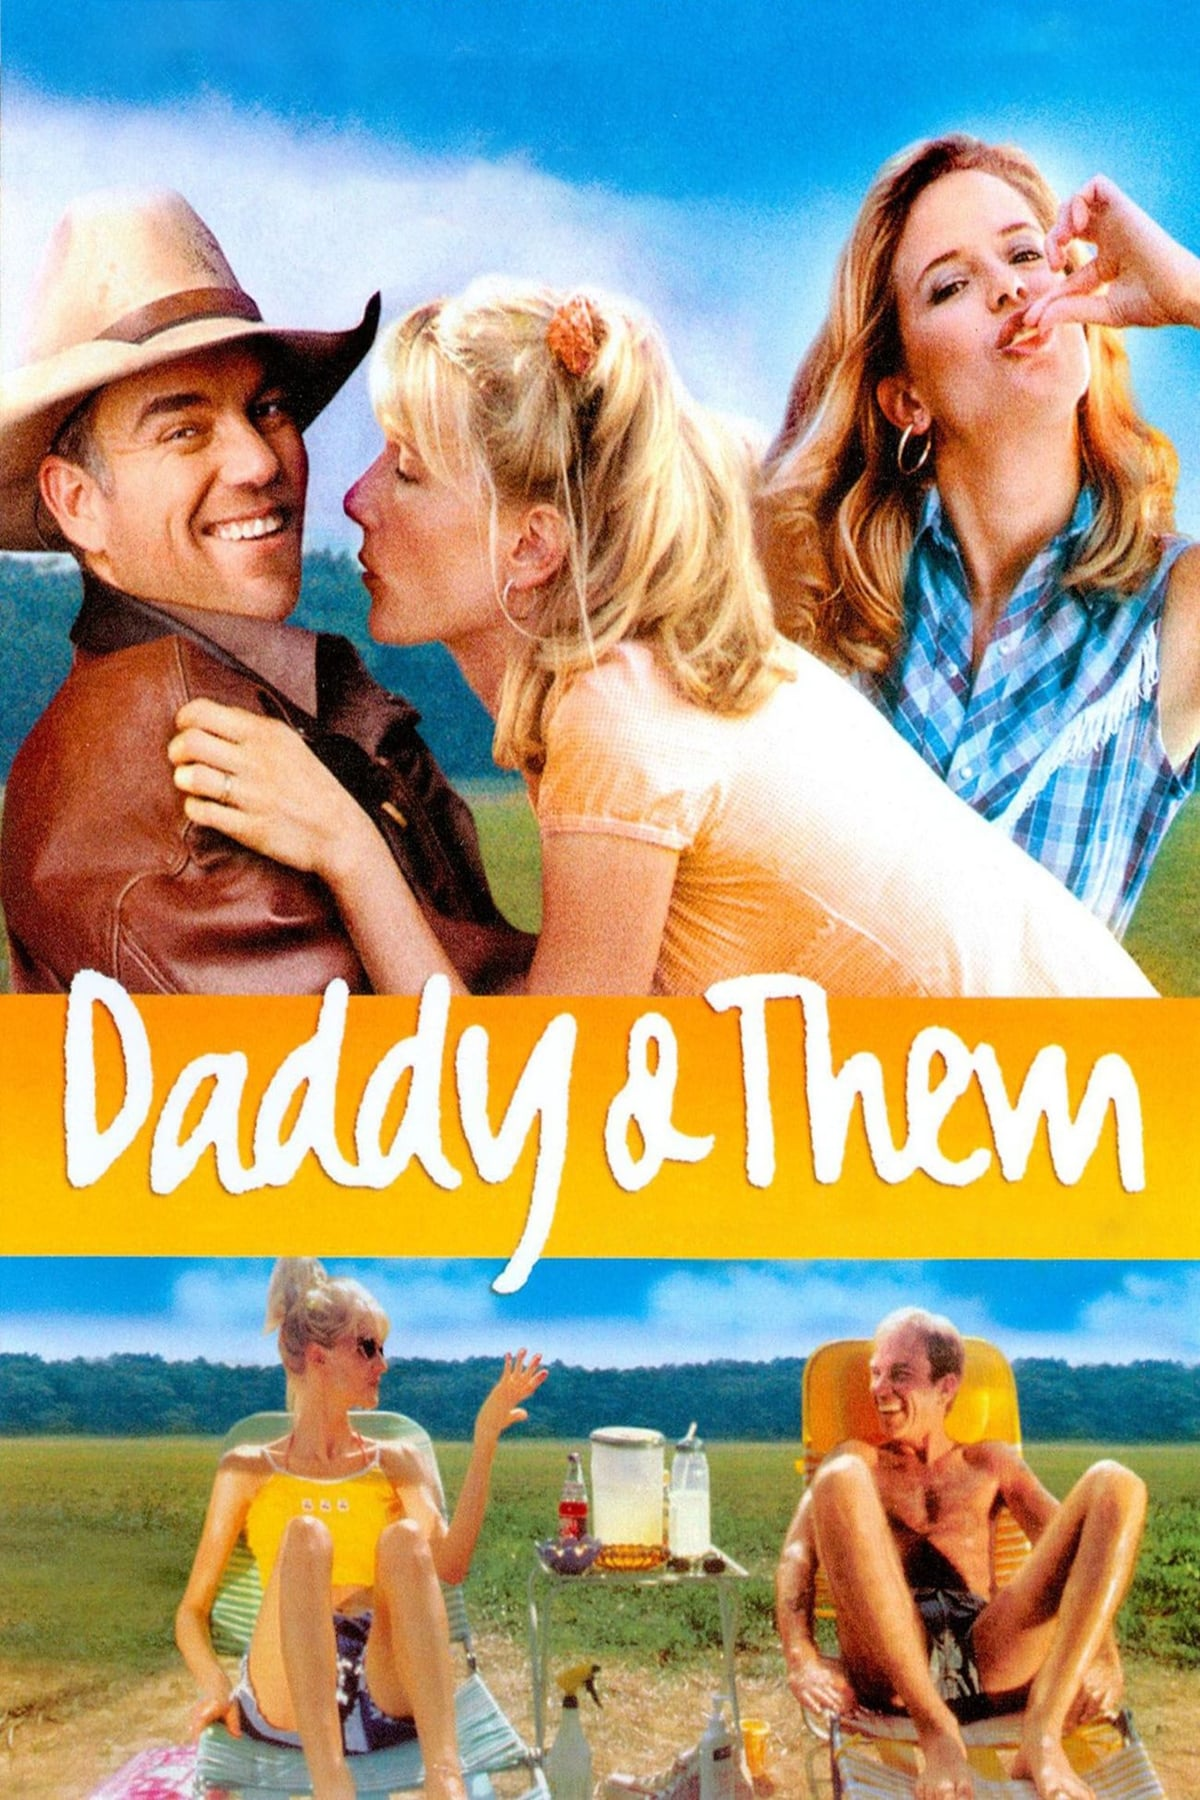 Daddy and Them (2001)